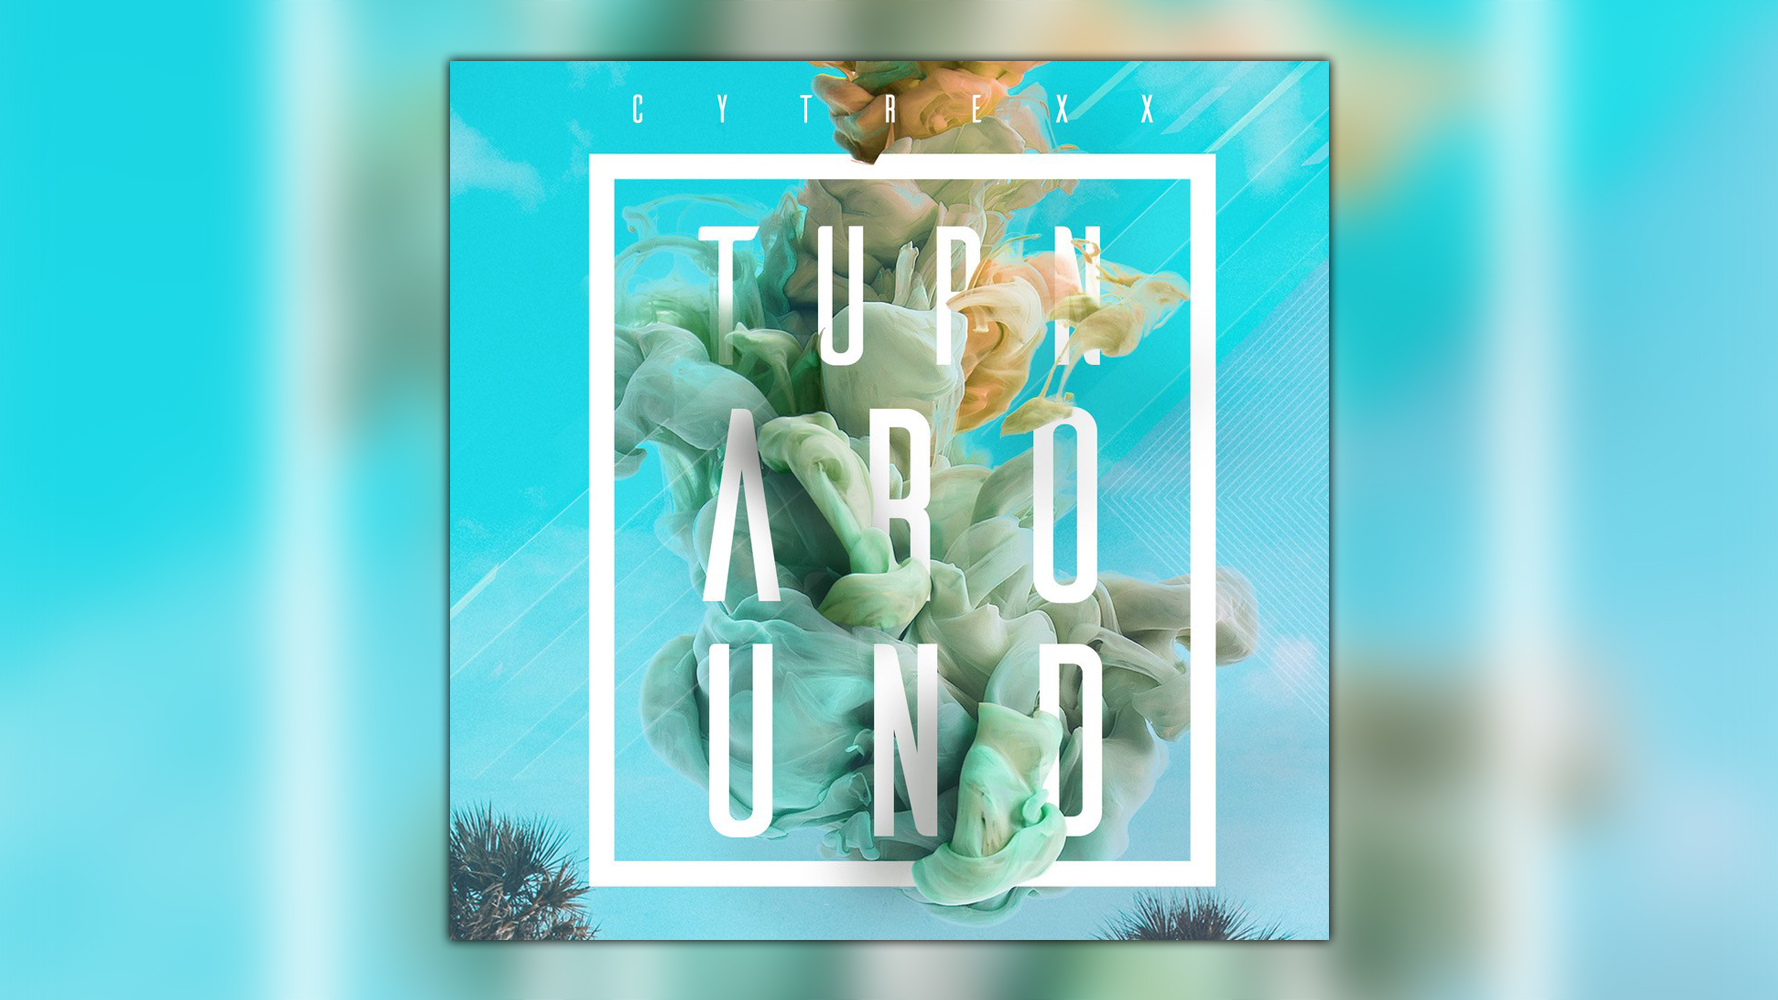 CyTreXX Returns With Great New Single 'Turn Around'!